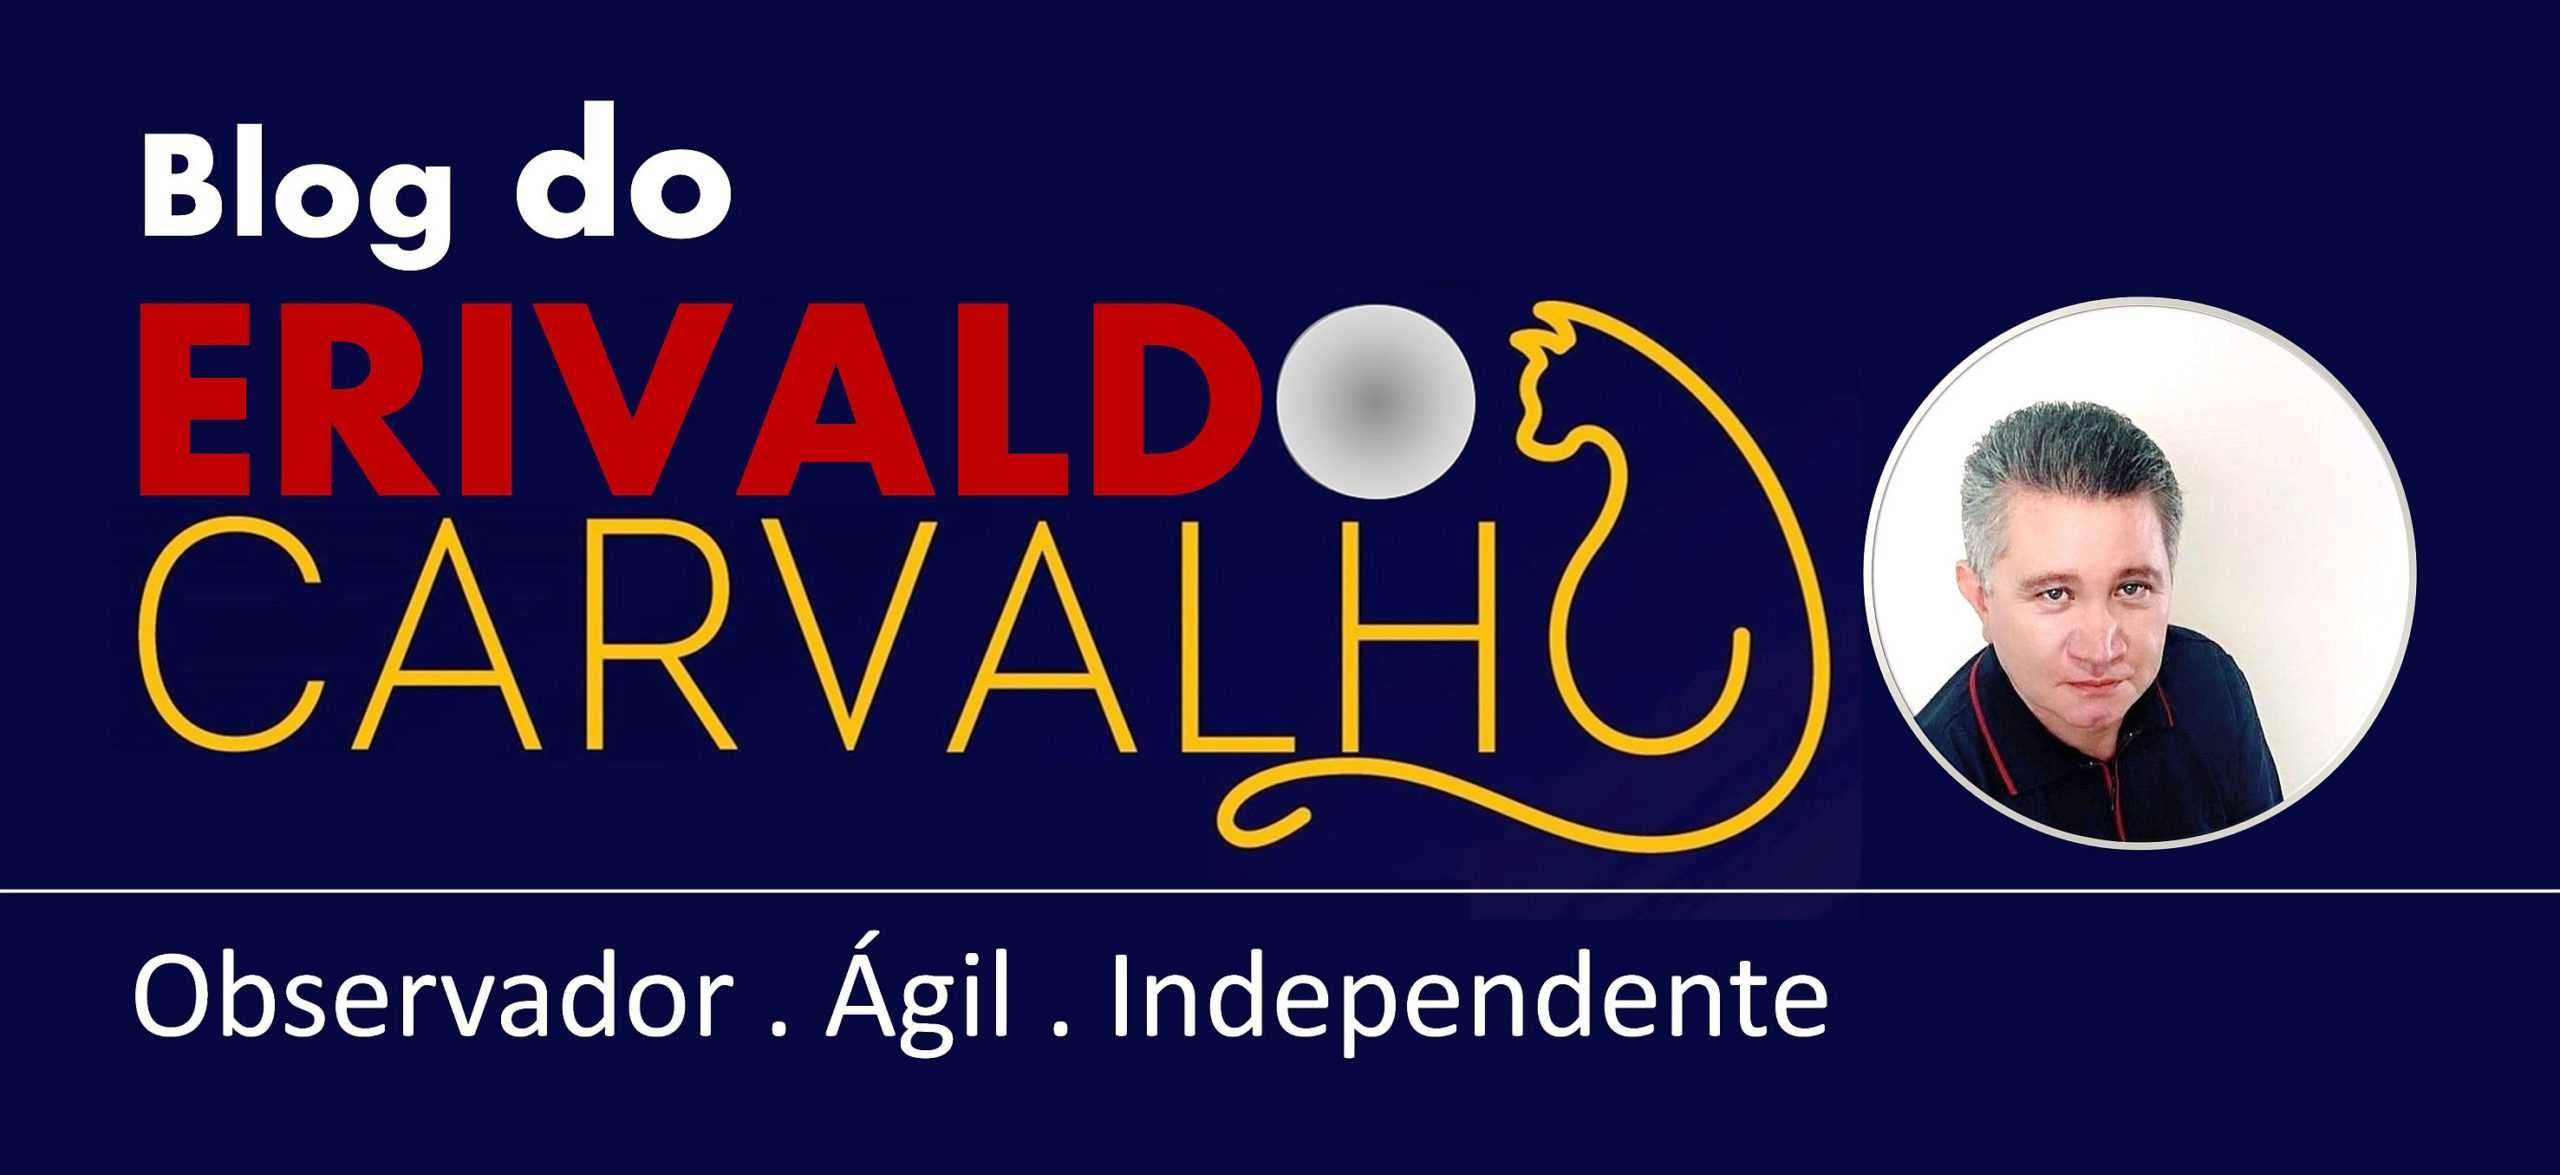 Blog do Erivaldo Carvalho